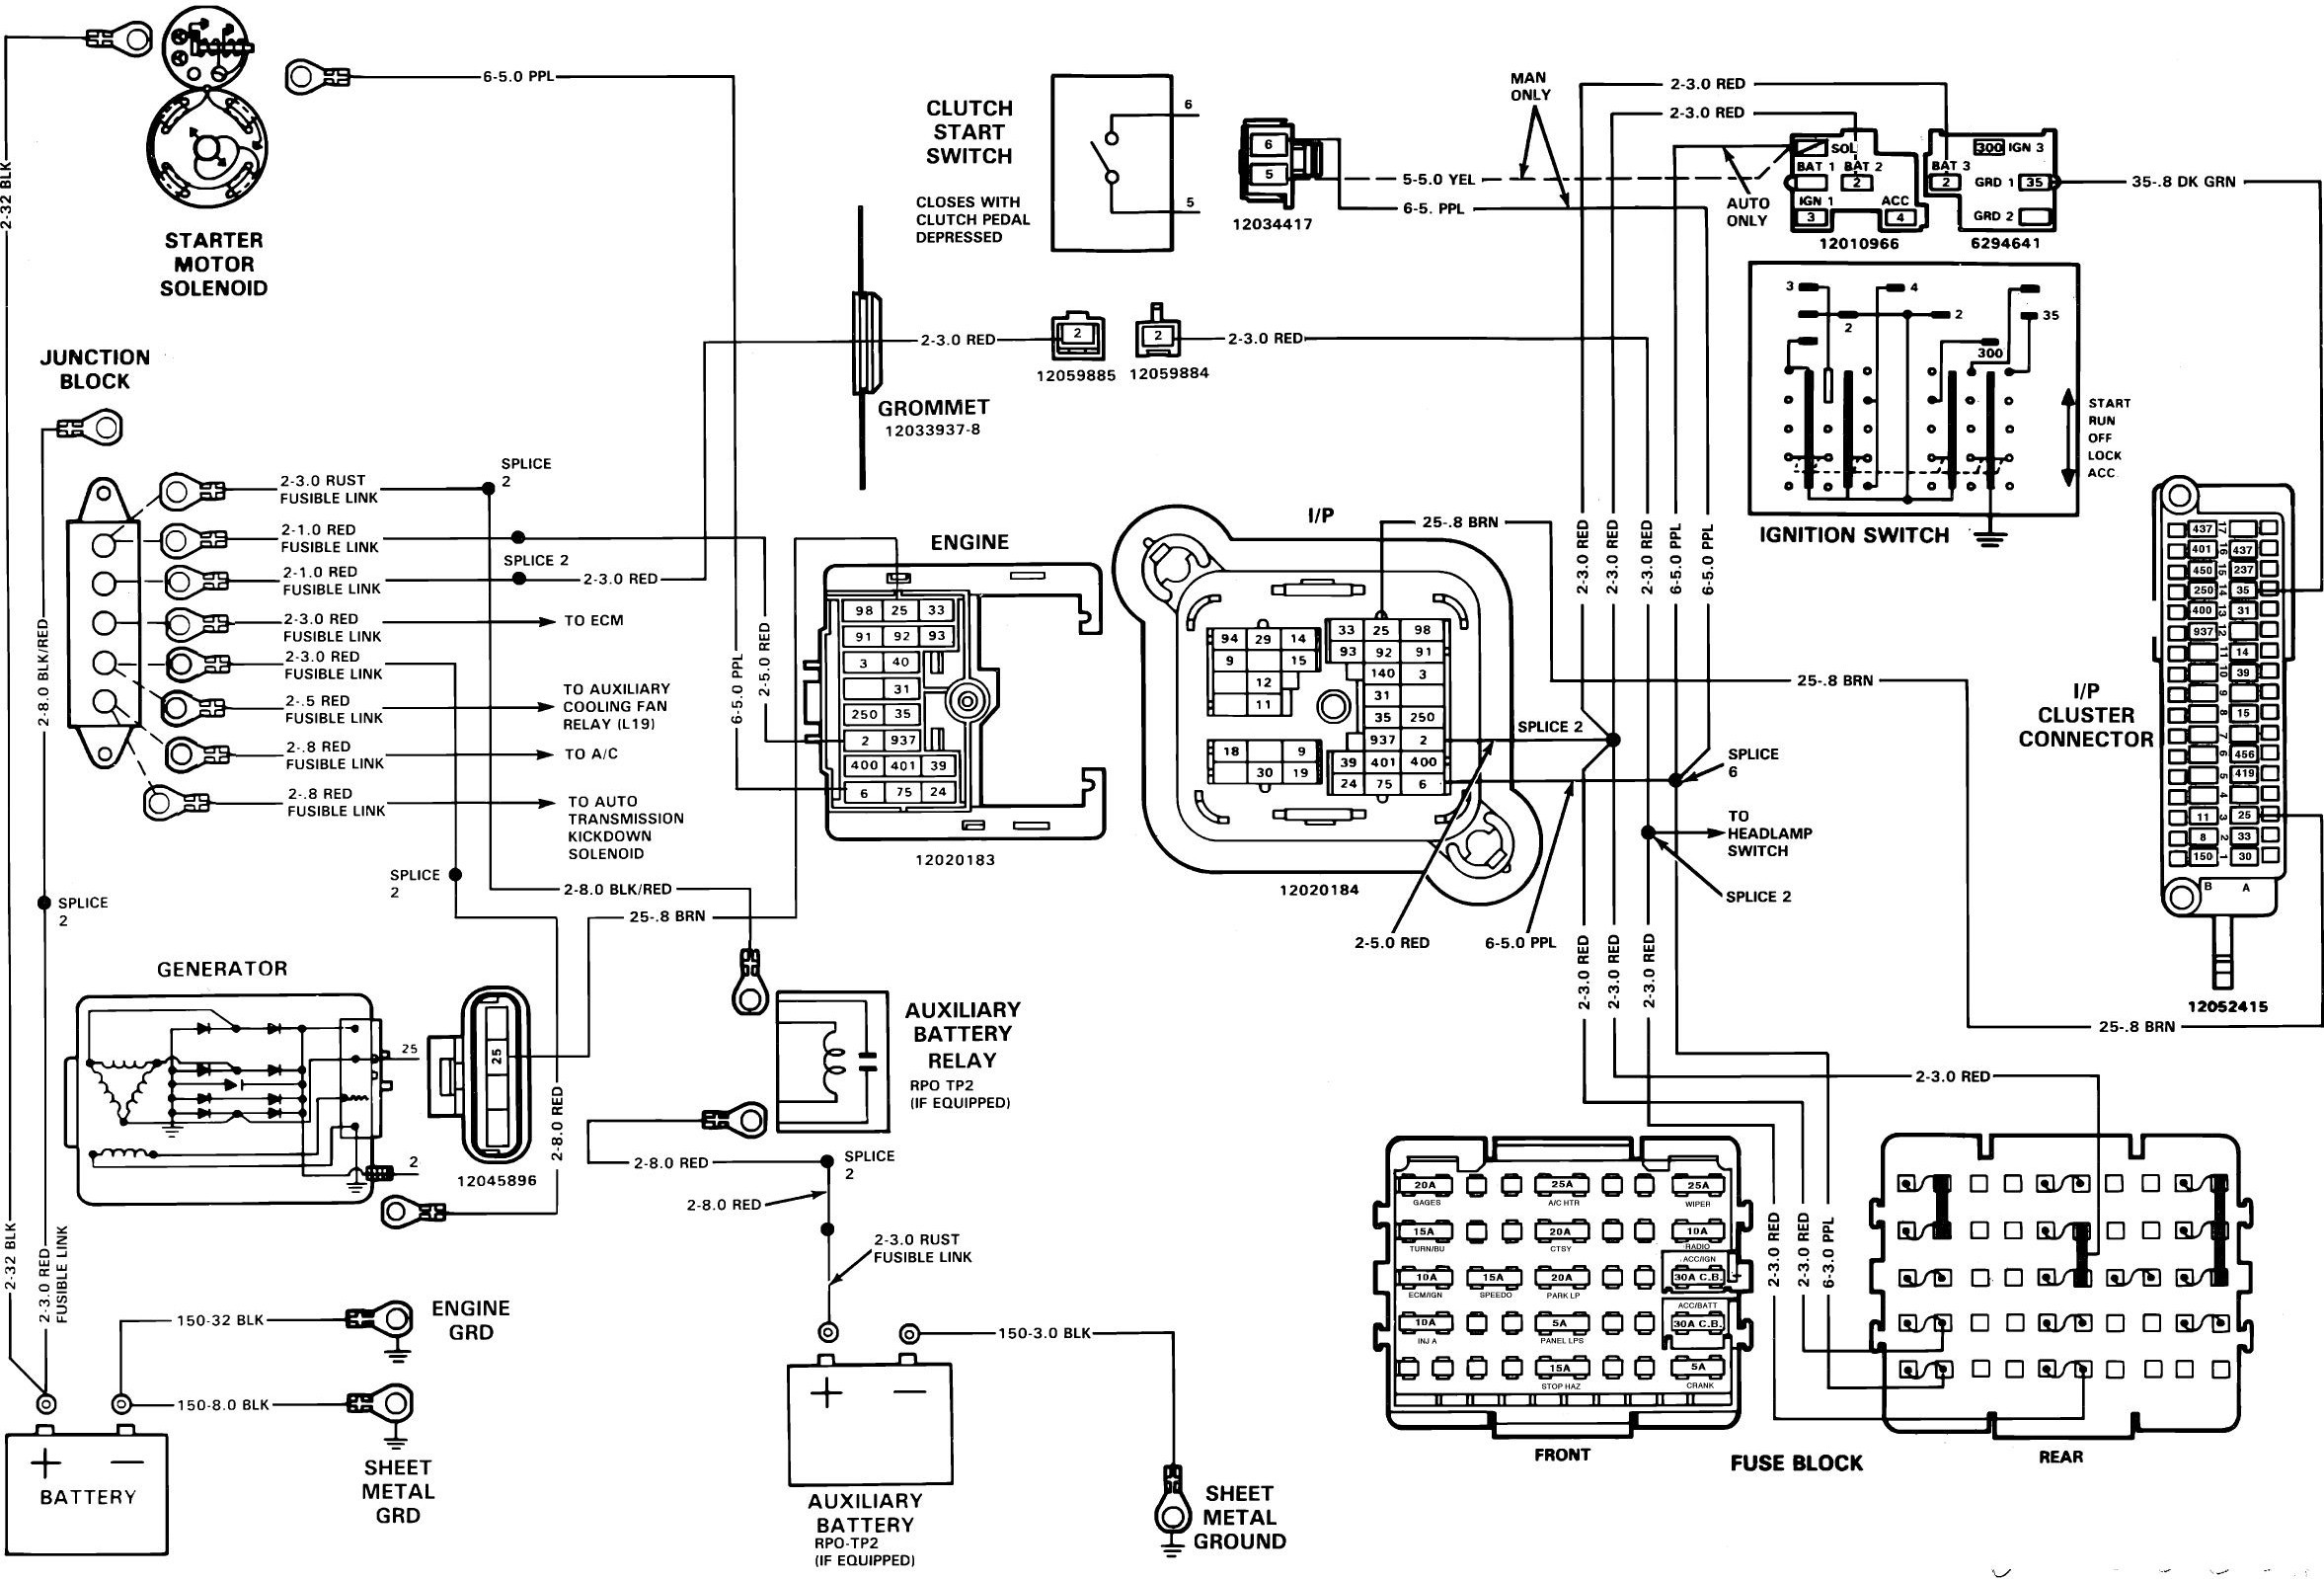 1988 chevy truck wiring diagram luxury 1989 chevy truck